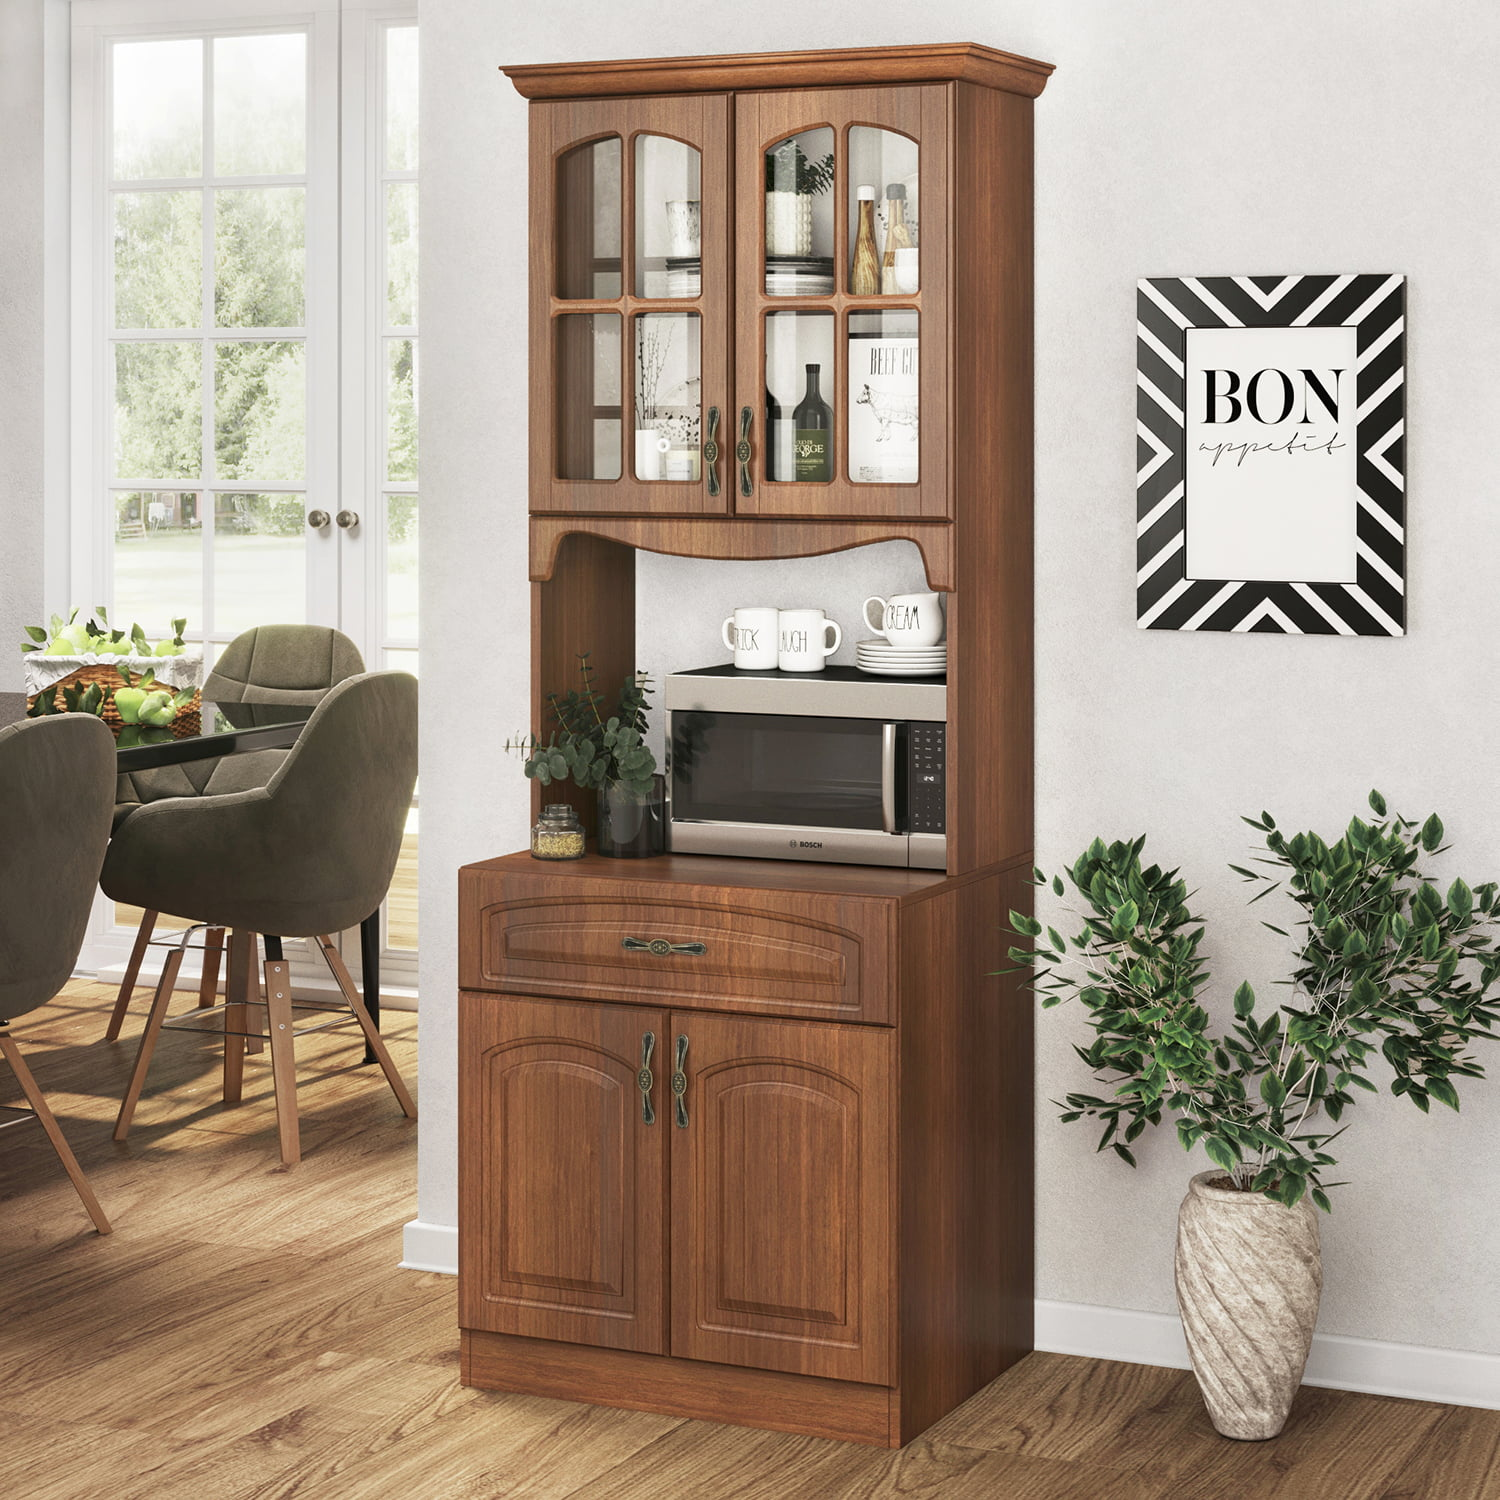 Living Skog Galiano 71 x 26 x 19 in (HxWxD) Pantry Kitchen ...